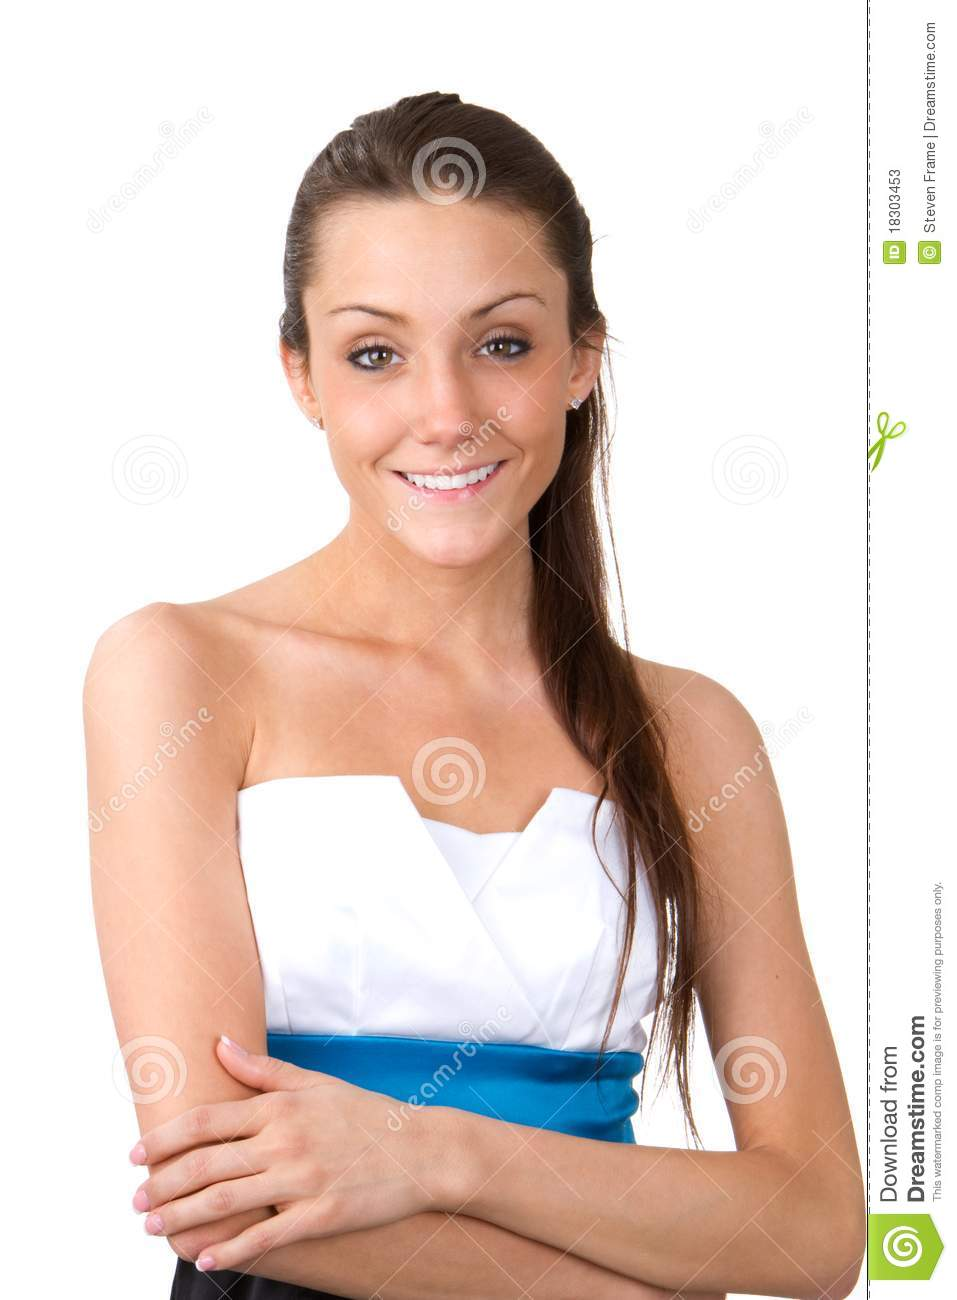 c0eb8fc41b10 Skinny Woman stock image. Image of shoulders